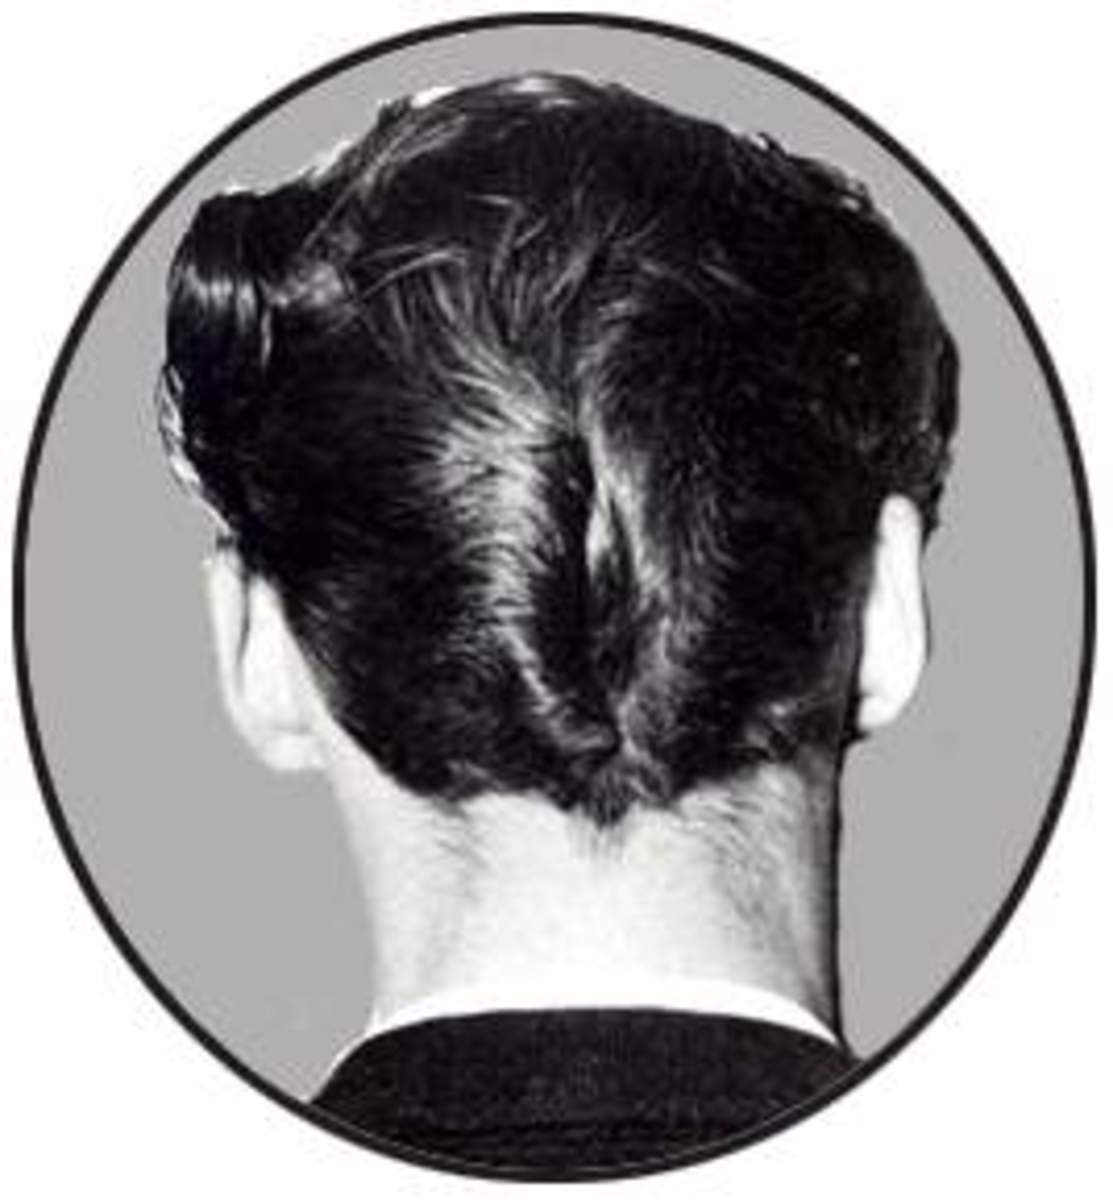 The D.A. hairdo favored by greasers was named for its resemblance to a duck's hind quarters.